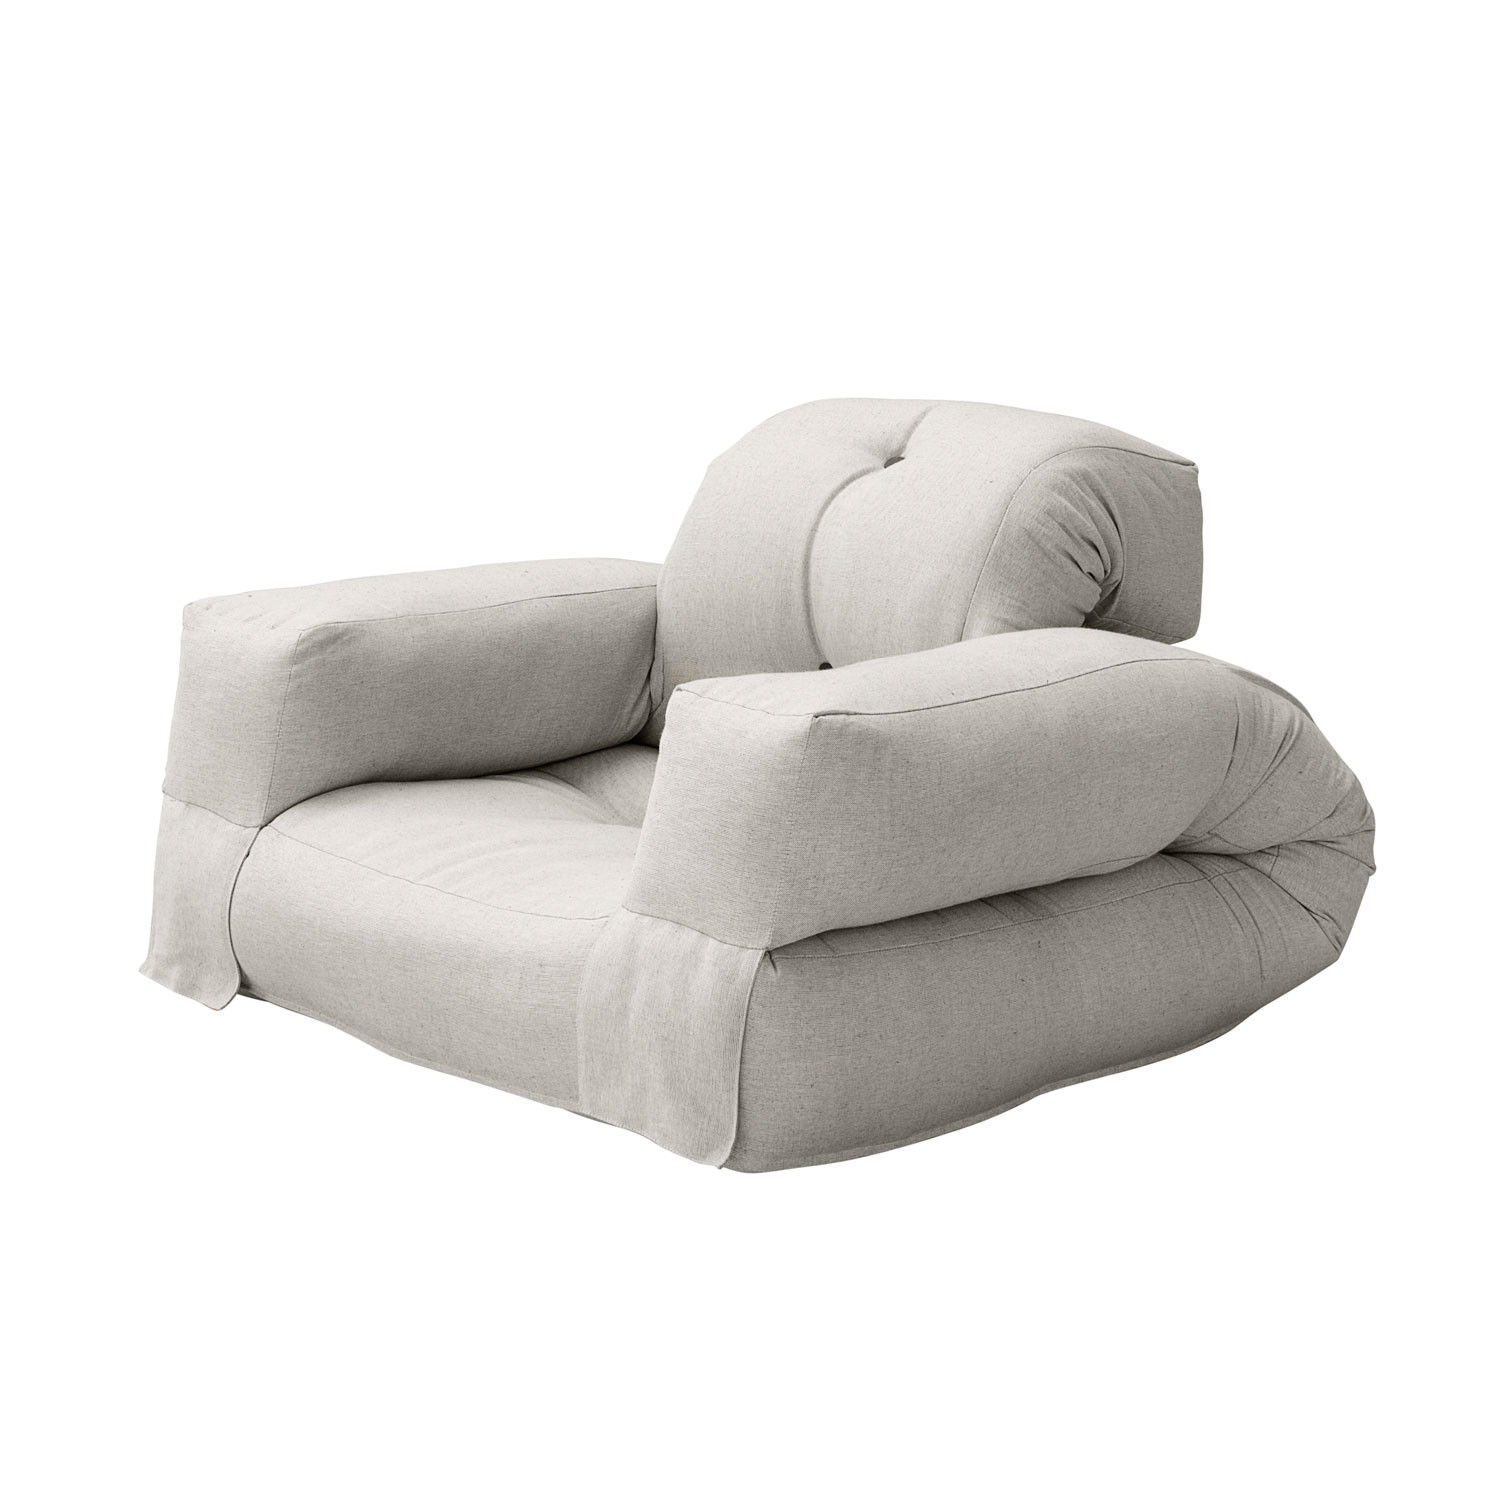 Hippo Natural Fresh Futon Muntech